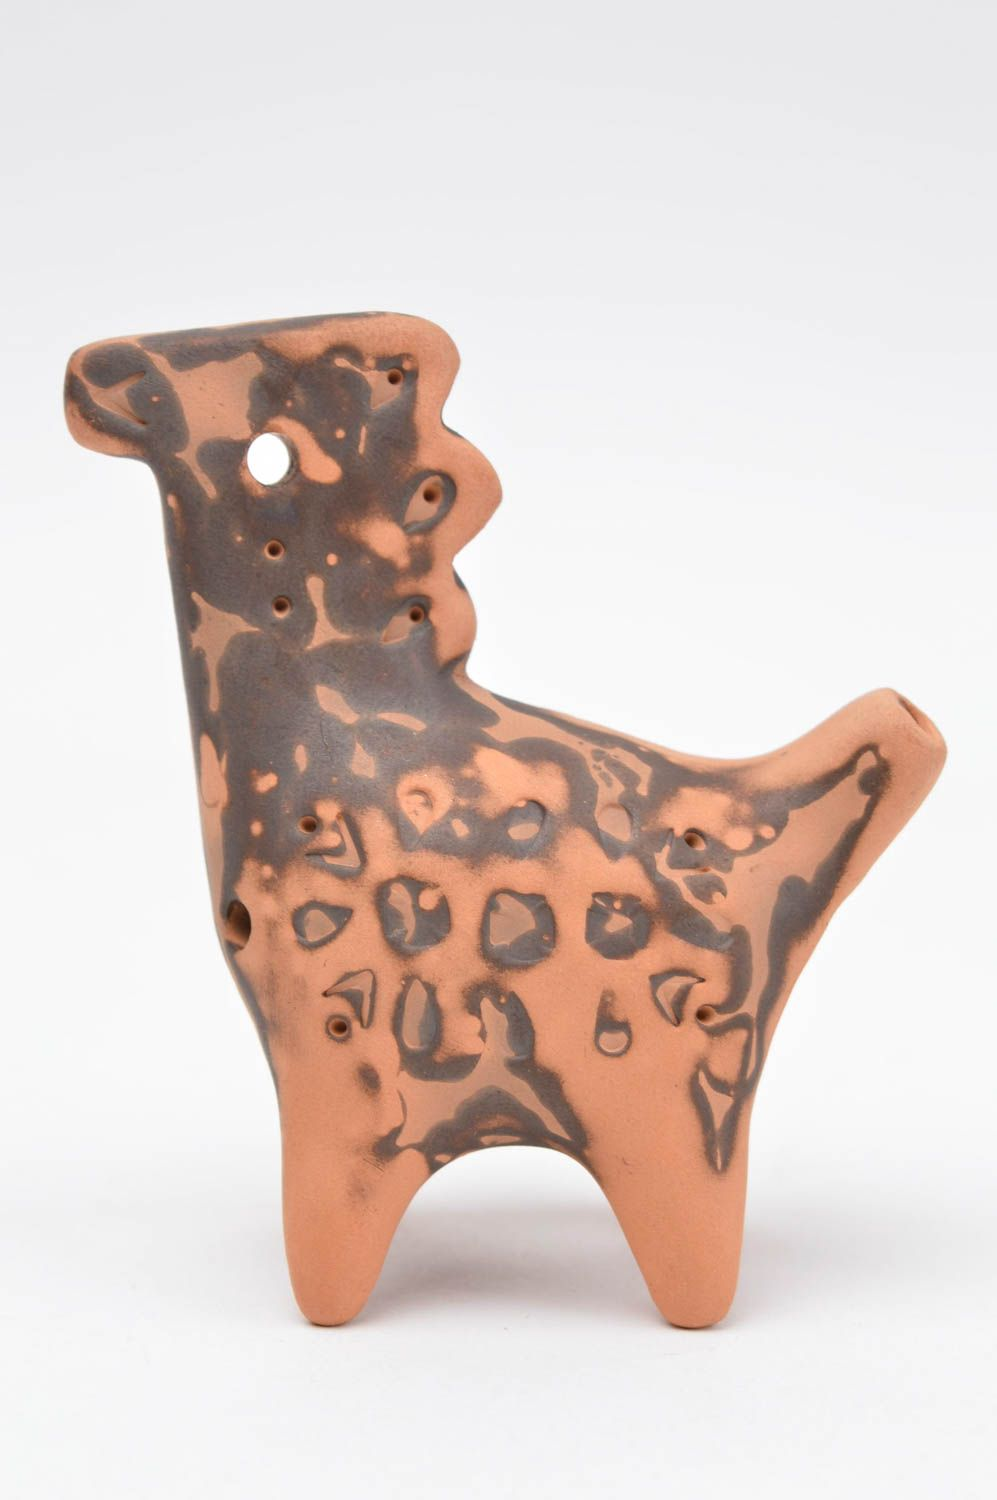 Handmade clay whistle ceramic whistle clay musical instruments clay figurine photo 2